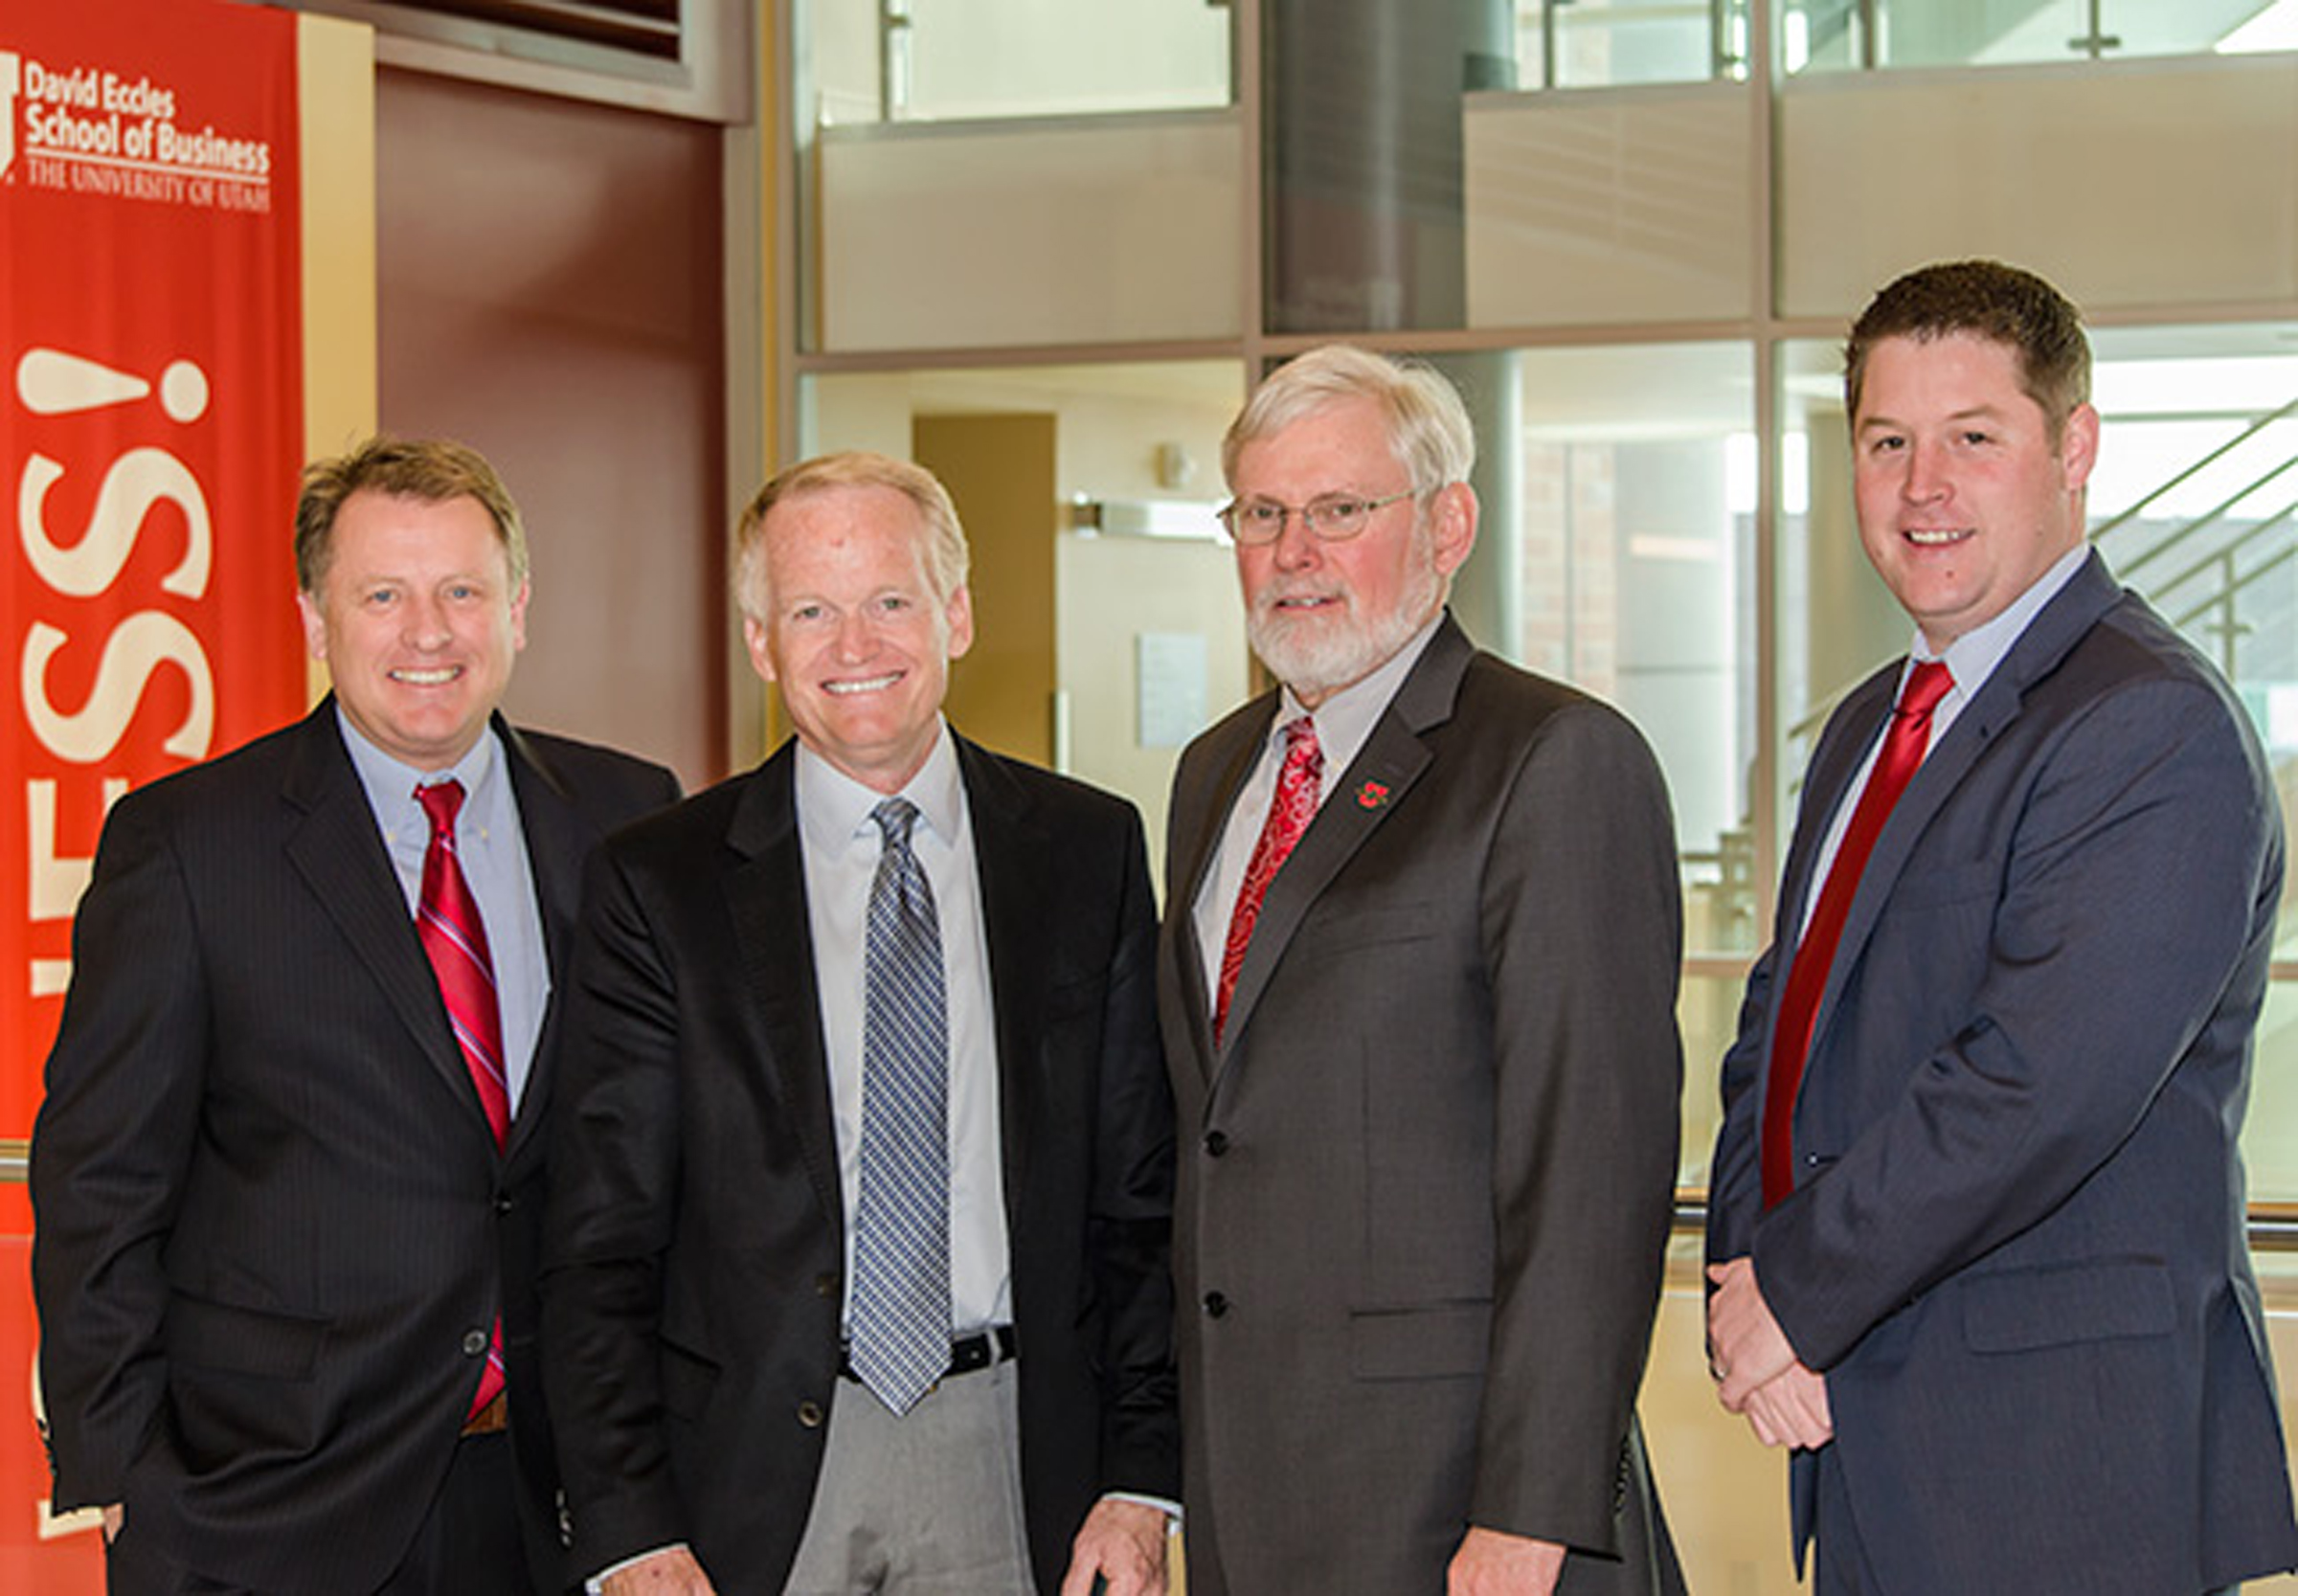 (left to right) David Eccles School of Business Dean Taylor Randall, James Lee Sorenson, University of Utah President David Pershing, and Lewis Hower, managing director of the James Lee Sorenson Center for Global Impact Investing.